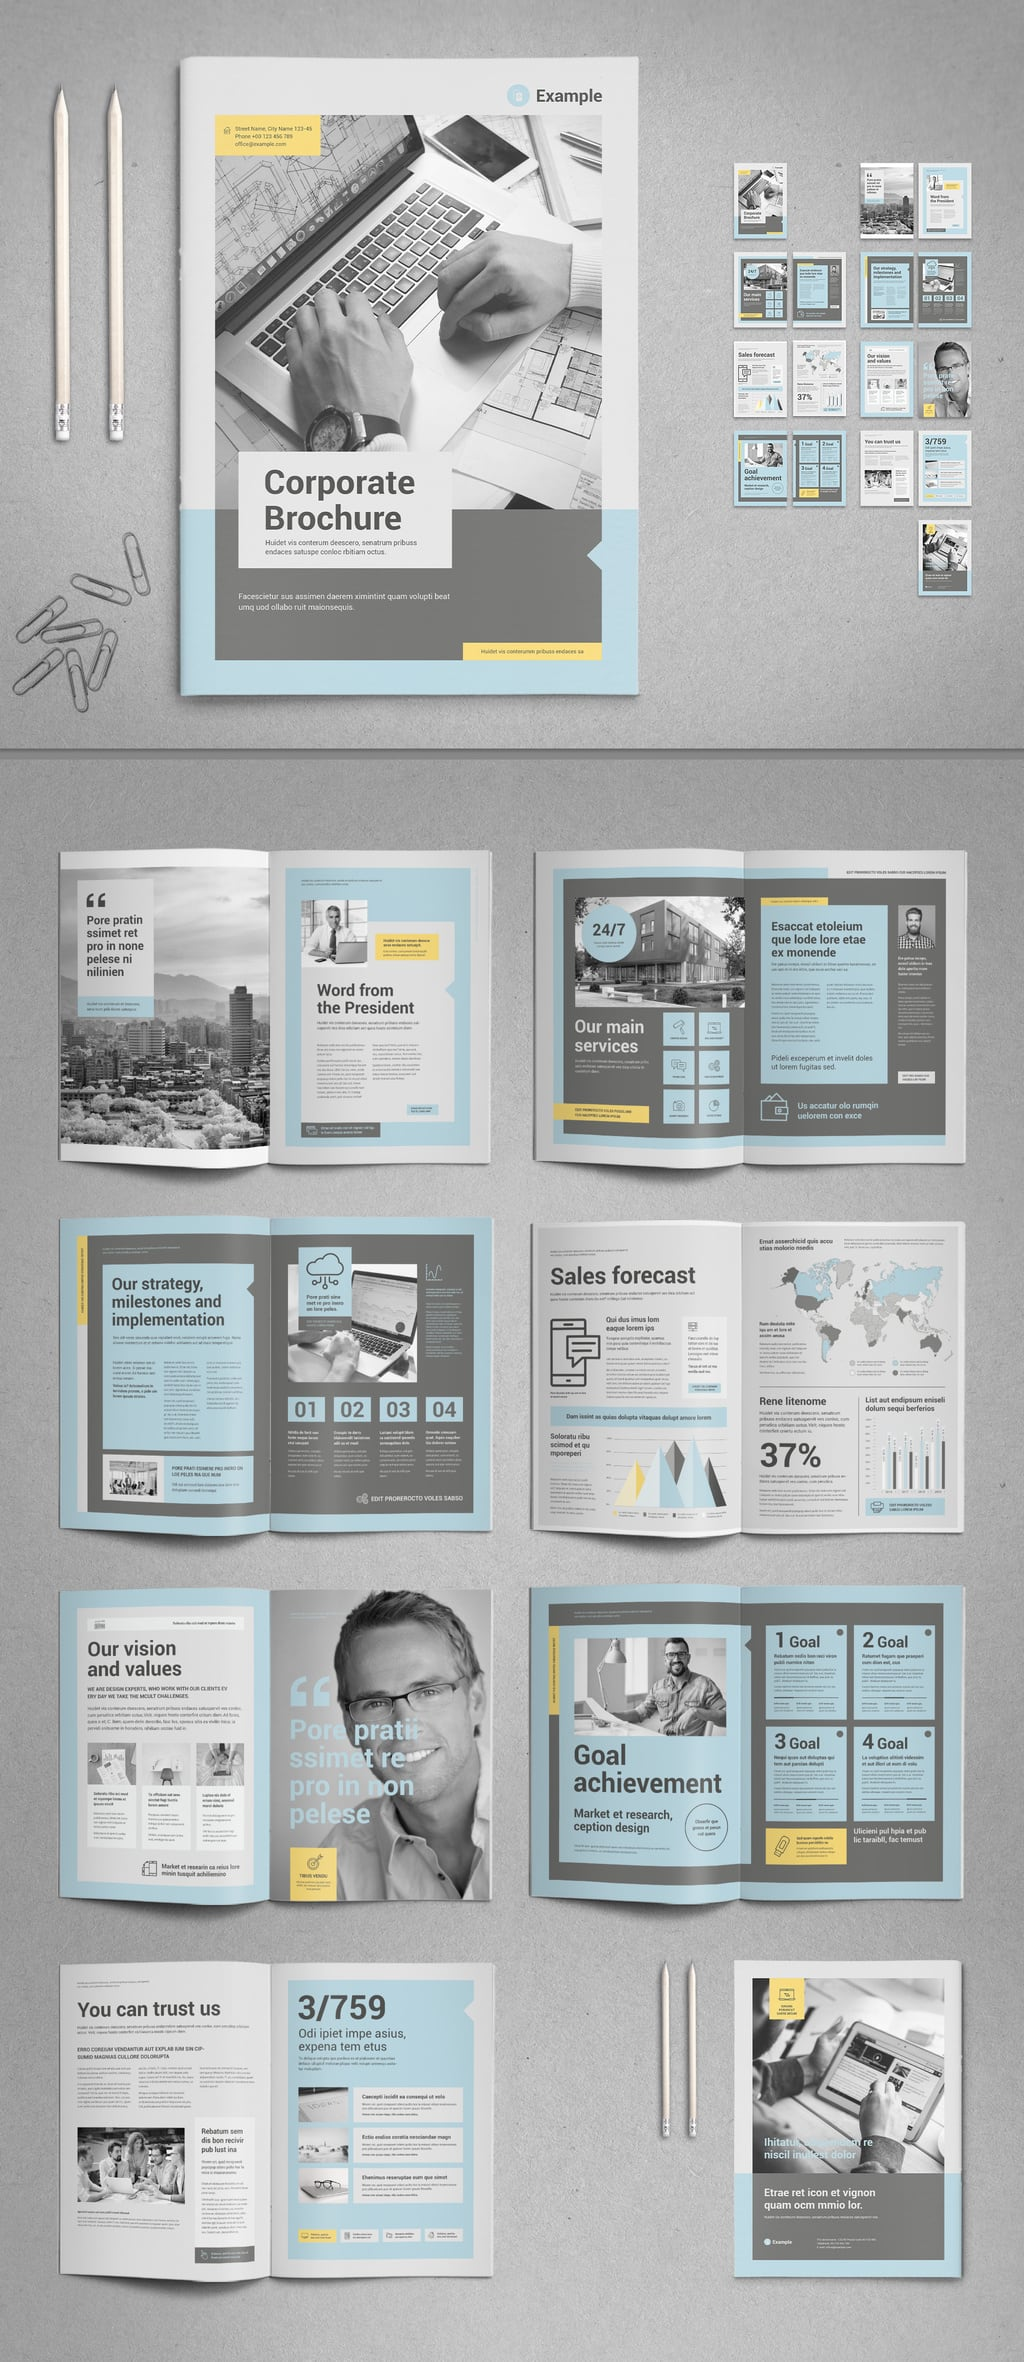 Charming Creativity Brochure InDesign template